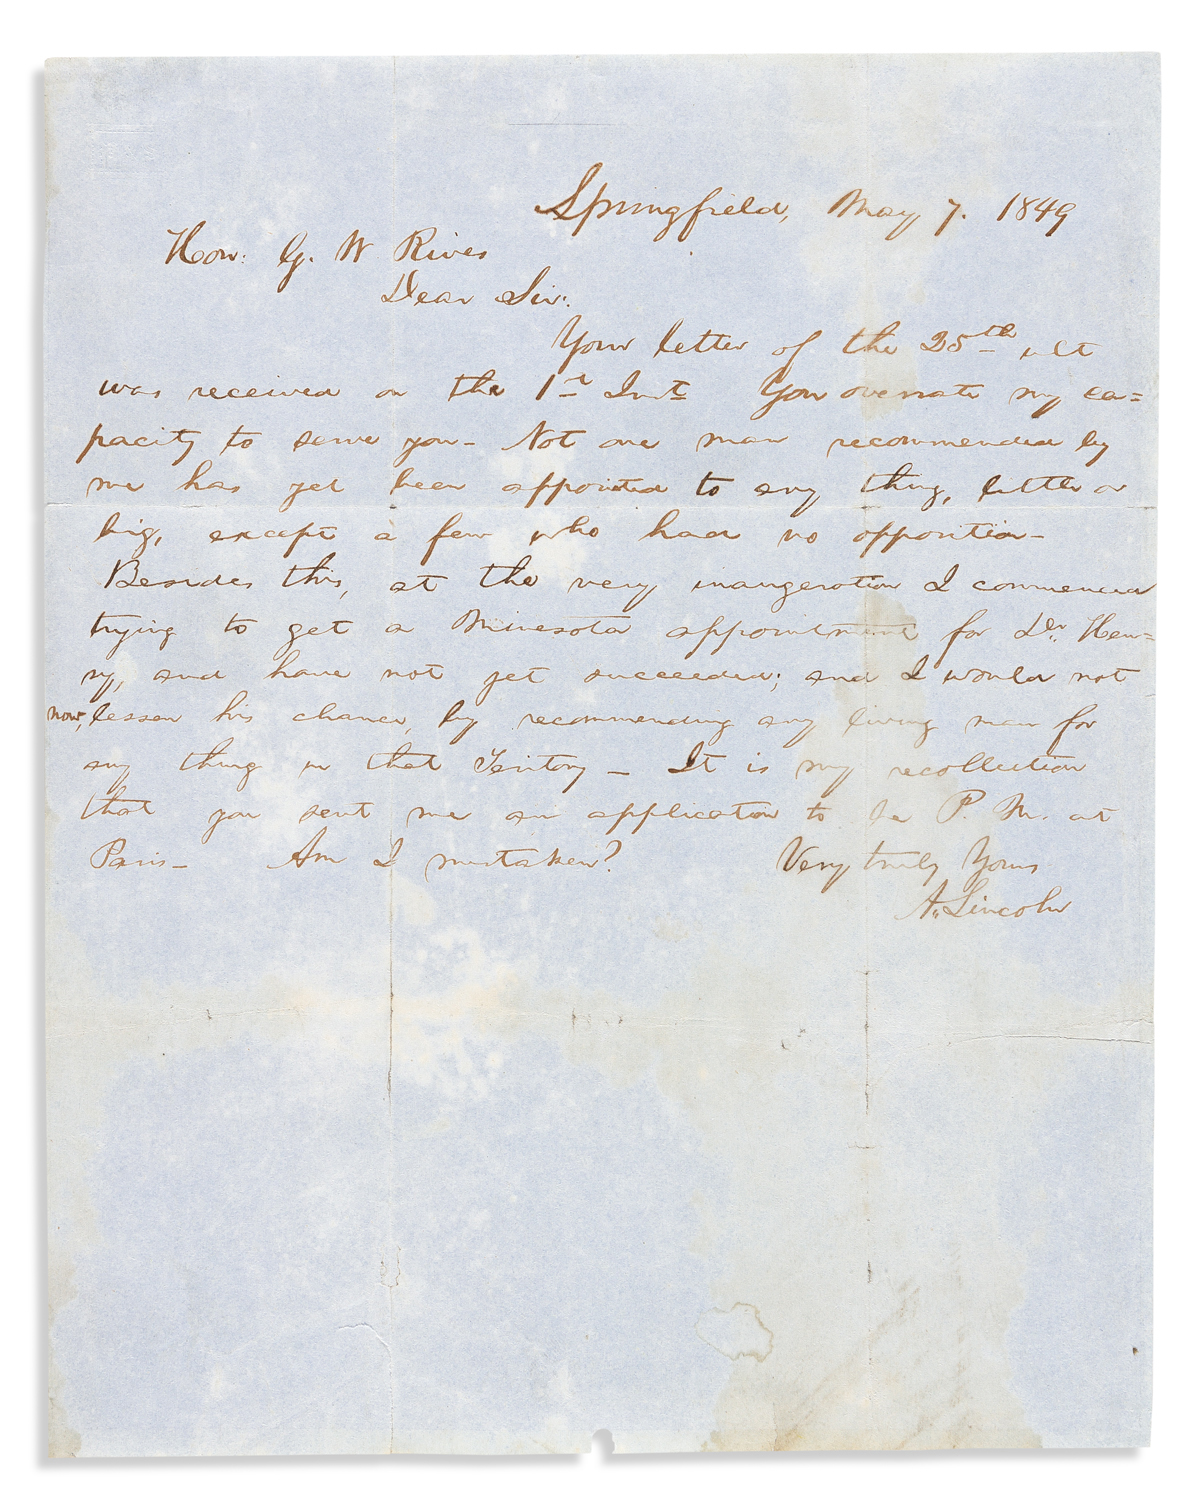 """LINCOLN, ABRAHAM. Autograph Letter Signed, """"A.Lincoln,"""" to Whig activist George W. Rives (""""Hon: G.W. Rives""""),"""